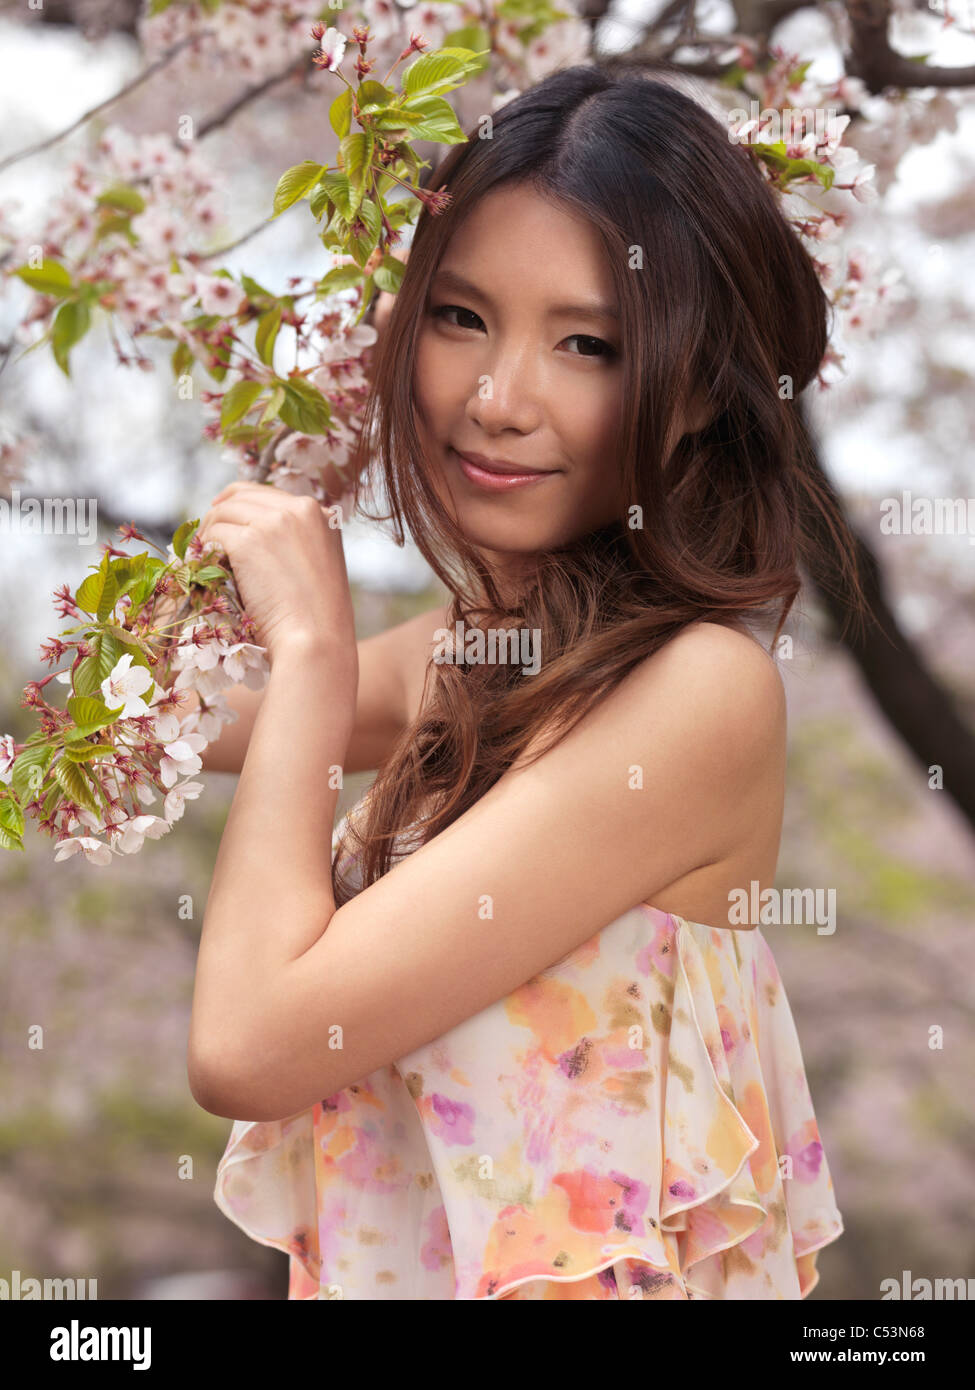 Portrait of a beautiful young smiling Asian woman standing at a blooming cherry tree in a park Stock Photo